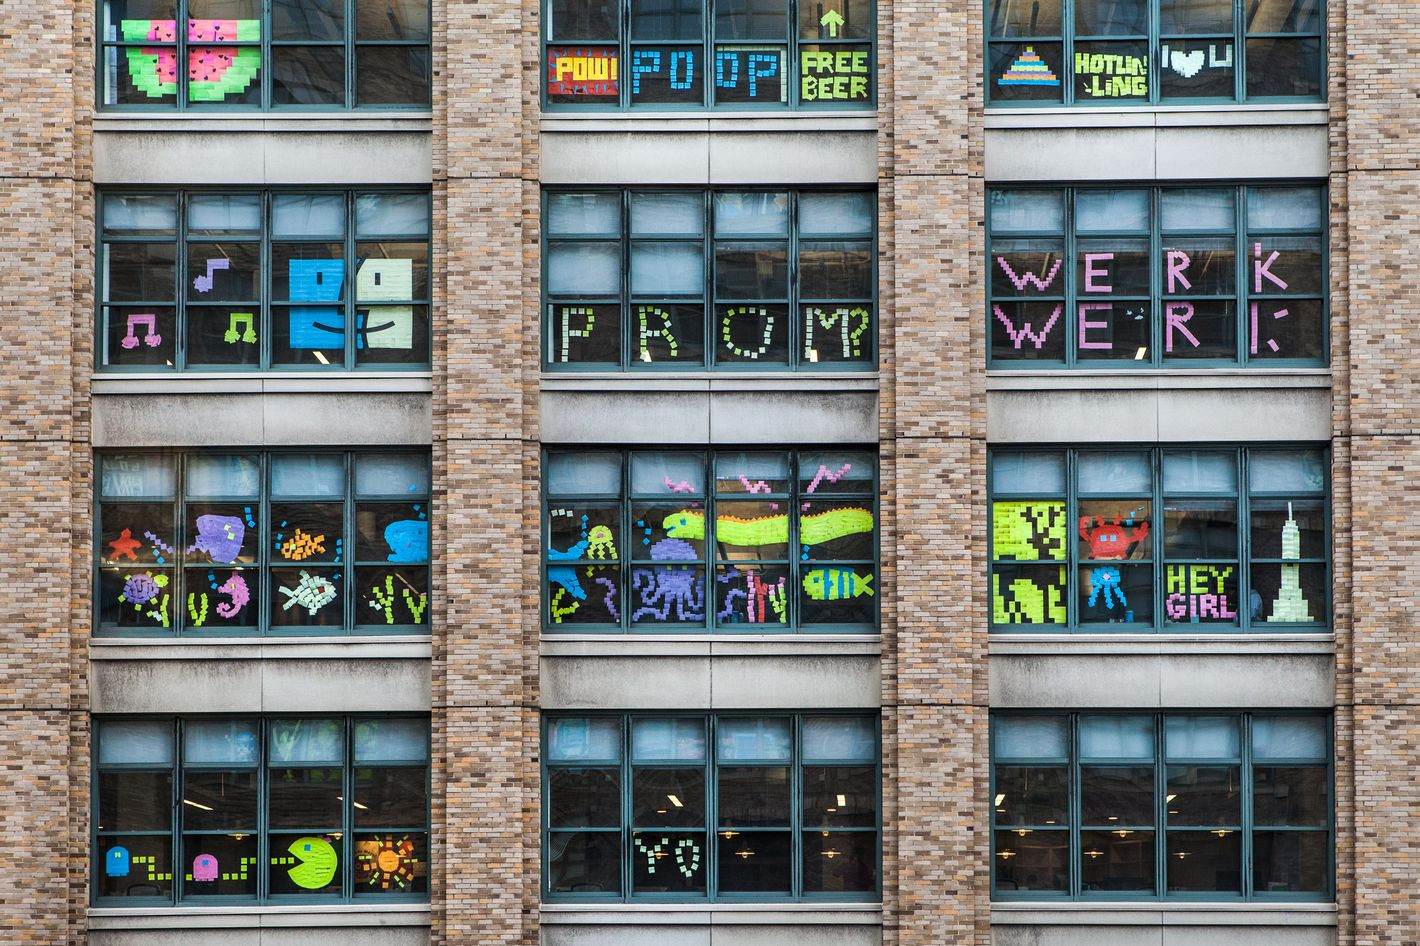 Two Buildings On Canal Street Are Waging A Post It War In Their Windows